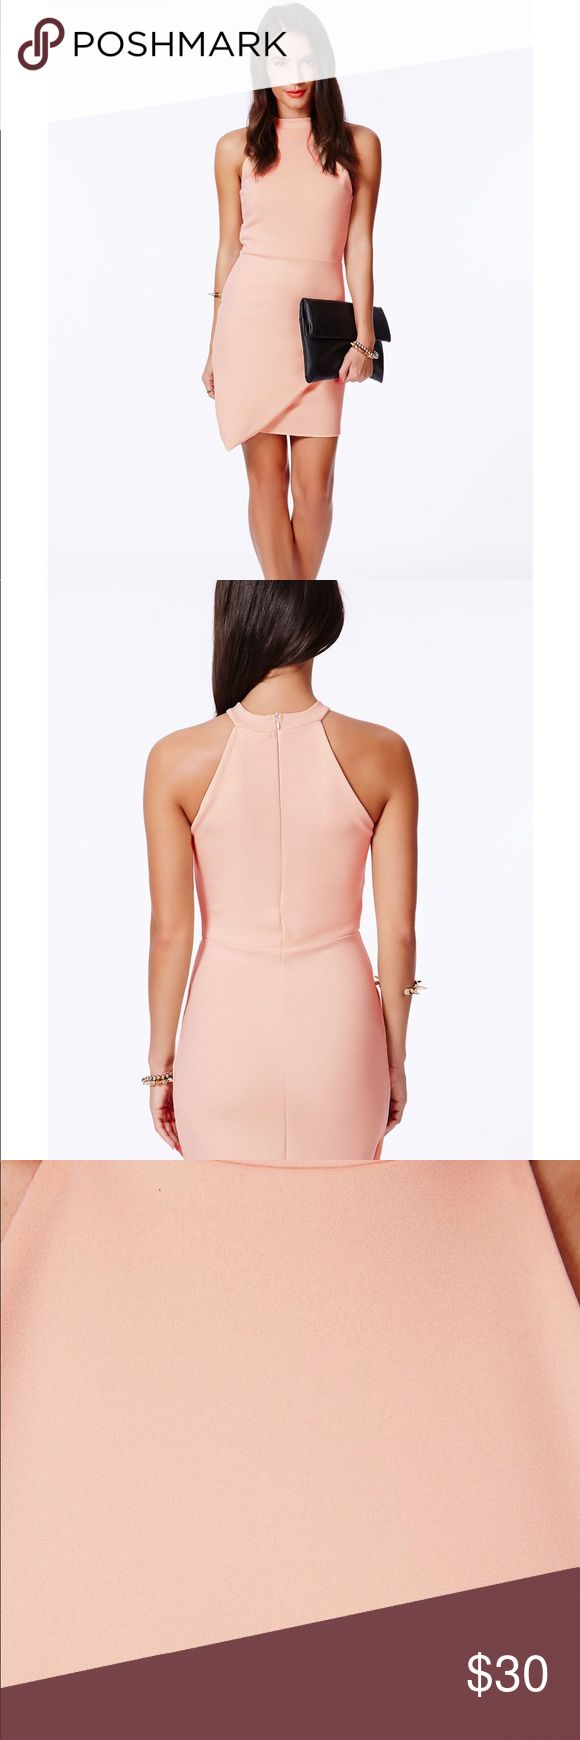 New Missguided Faustina Nude High Neck Dress NEW bodicon asymmetric dress! Perfect for special occasions or a night out. Pairs perfectly with black ankle strap heels and a black clutch. Missguided Dresses #anklestrapsheelswithdress